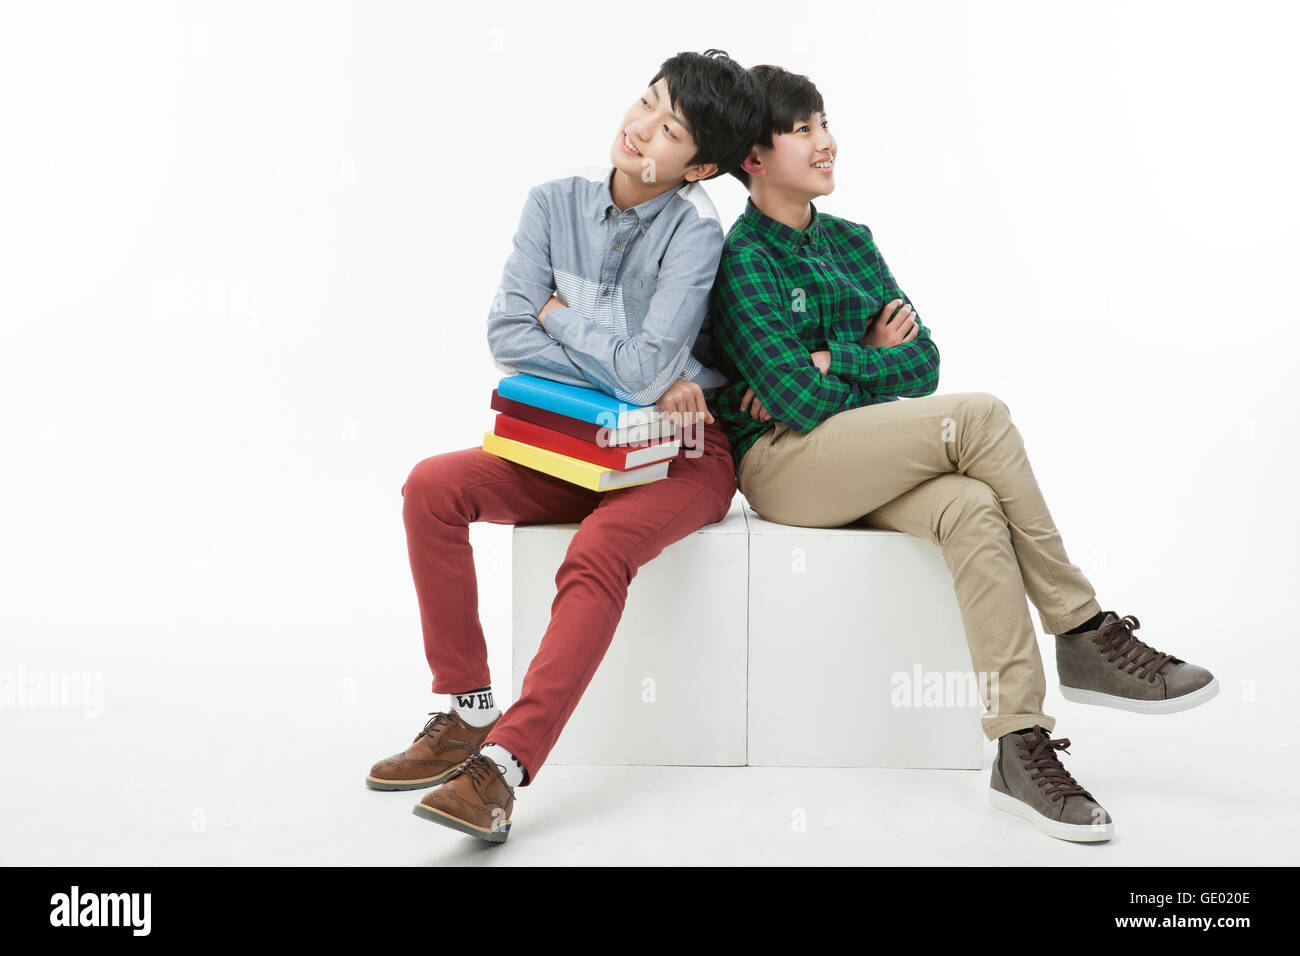 Two Korean school boys in casual clothes sitting with books